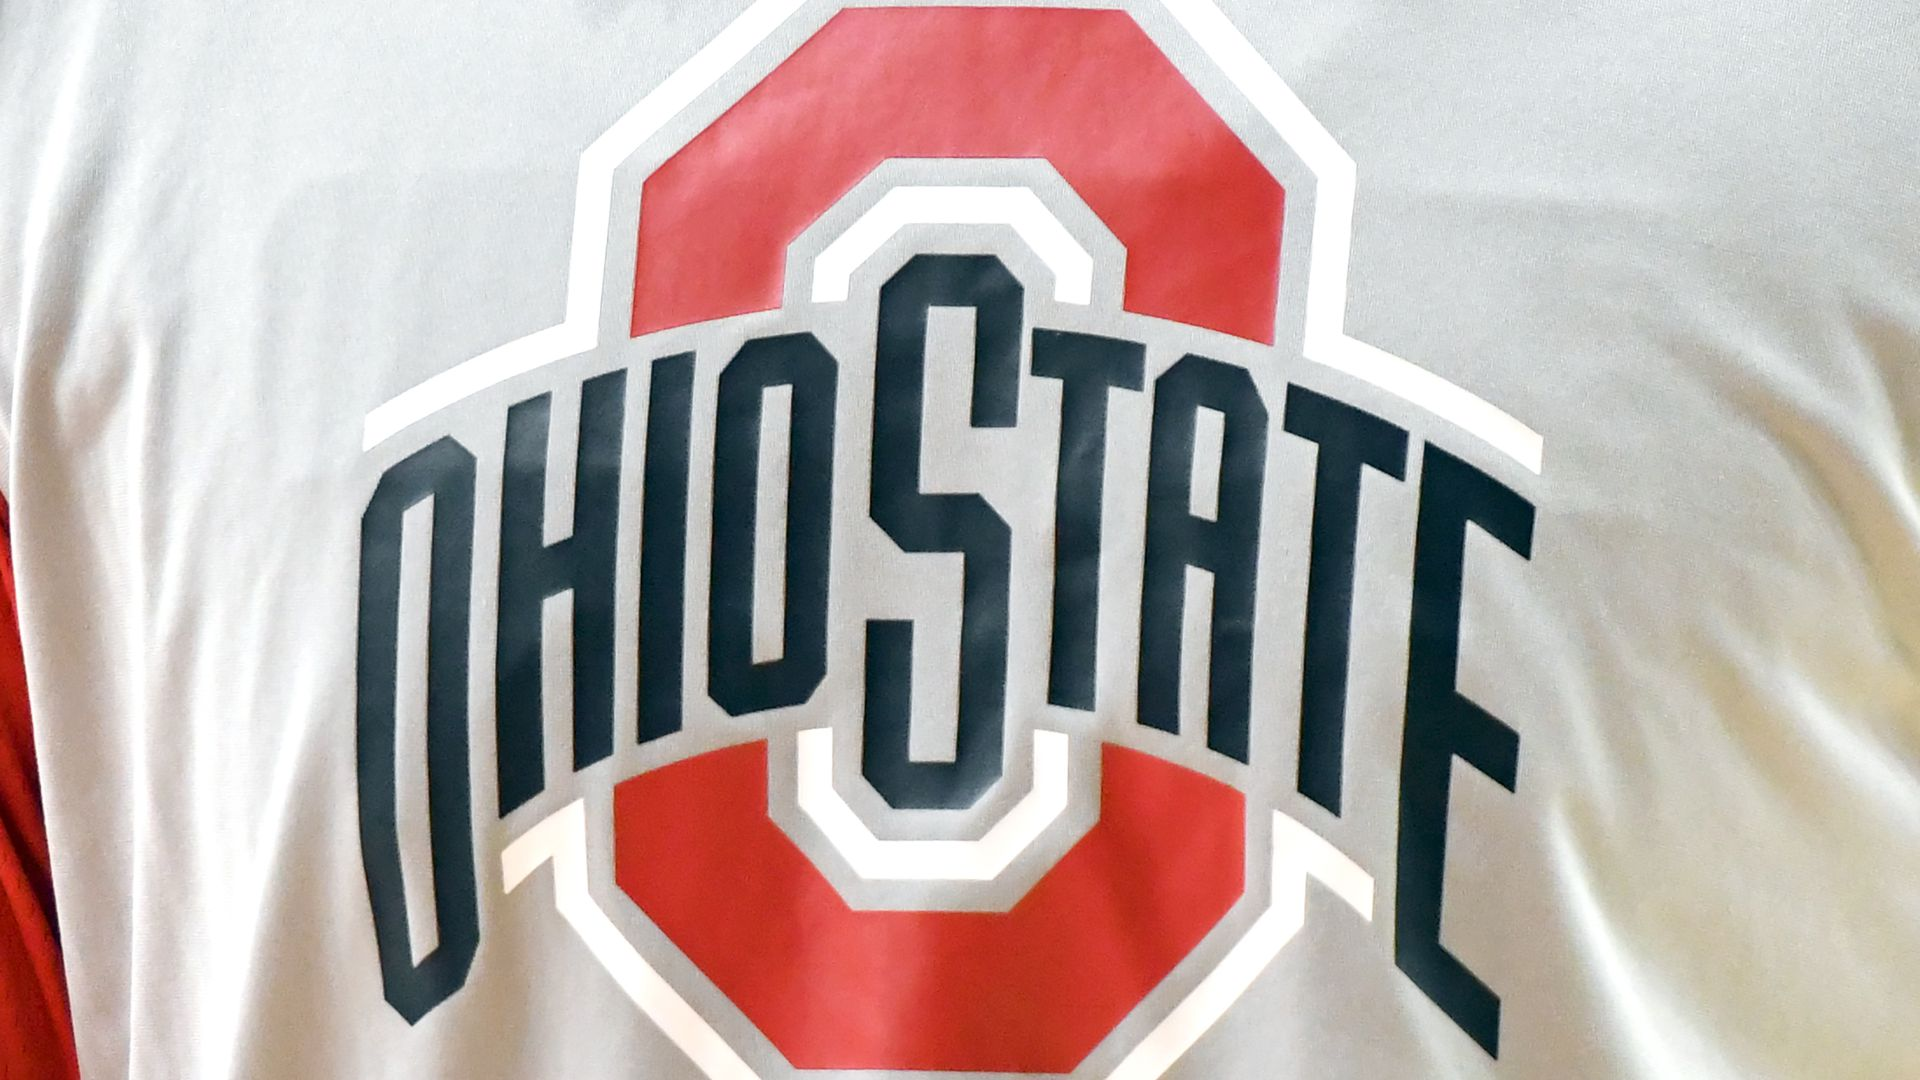 A new report found that a former Ohio State doctor sexually abused at least 177 students